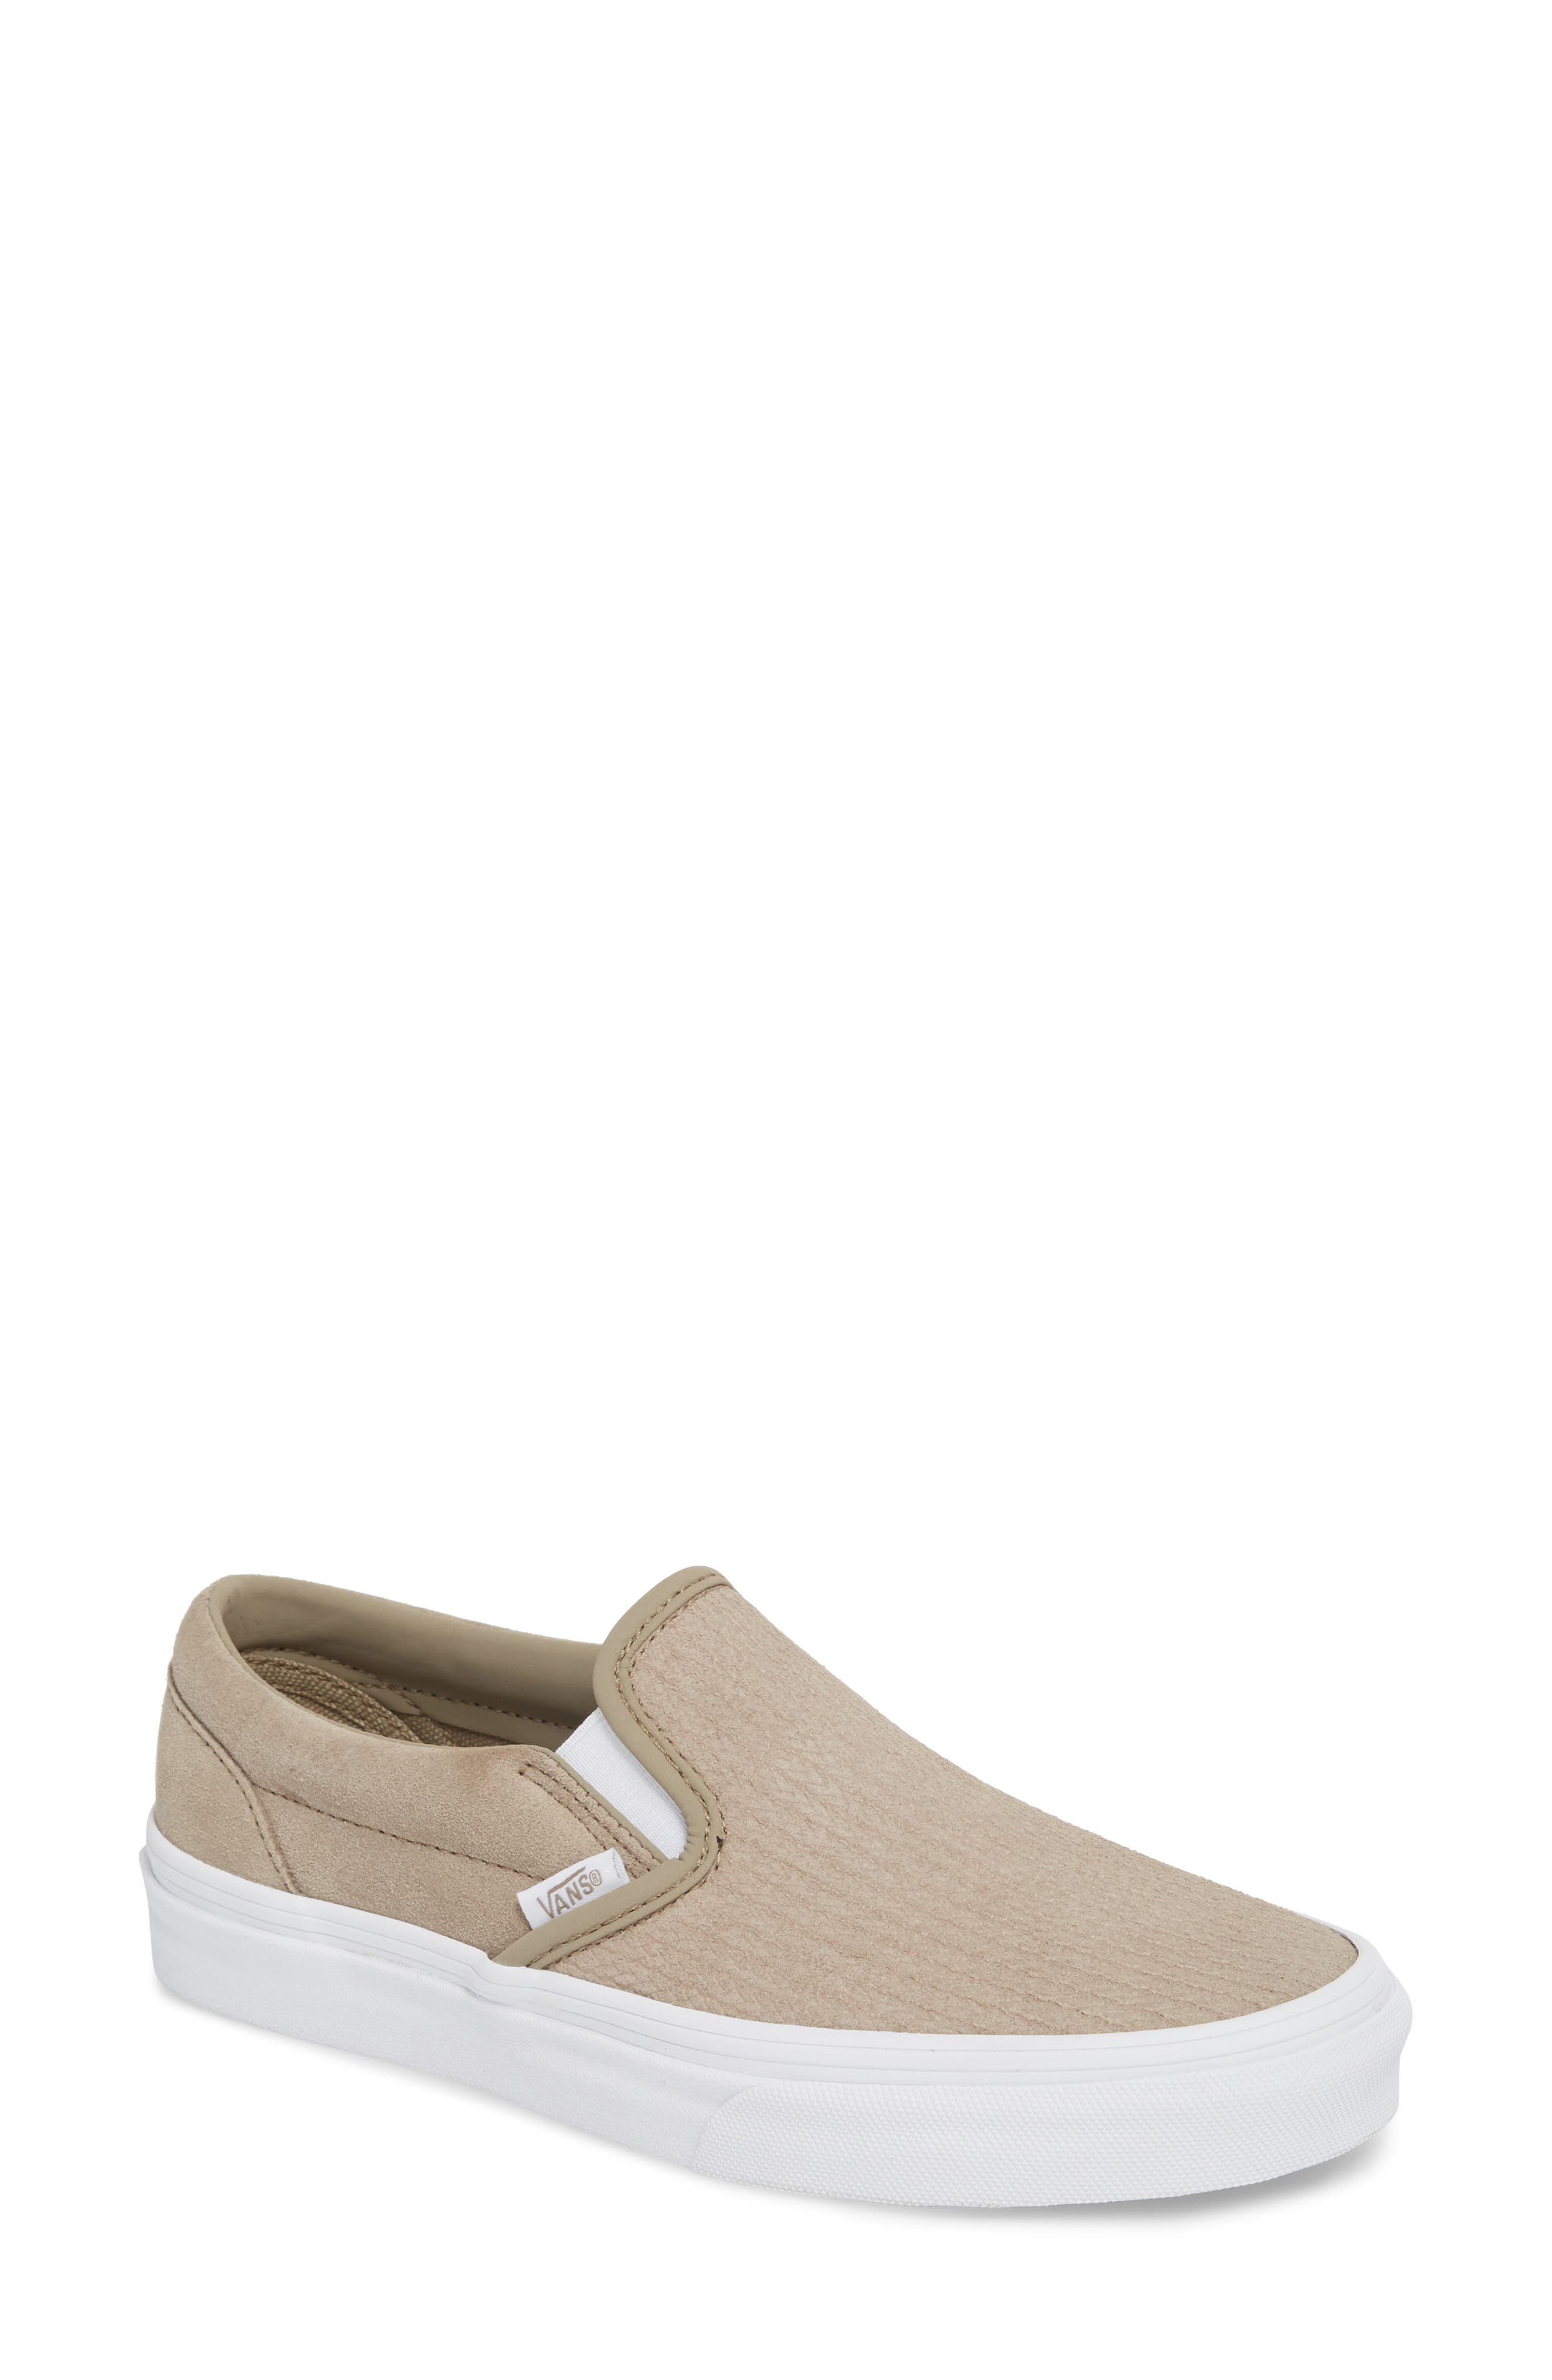 Classic Slip-On Sneaker,                             Main thumbnail 1, color,                             DESERT TAUPE/ EMBOSS SUEDE